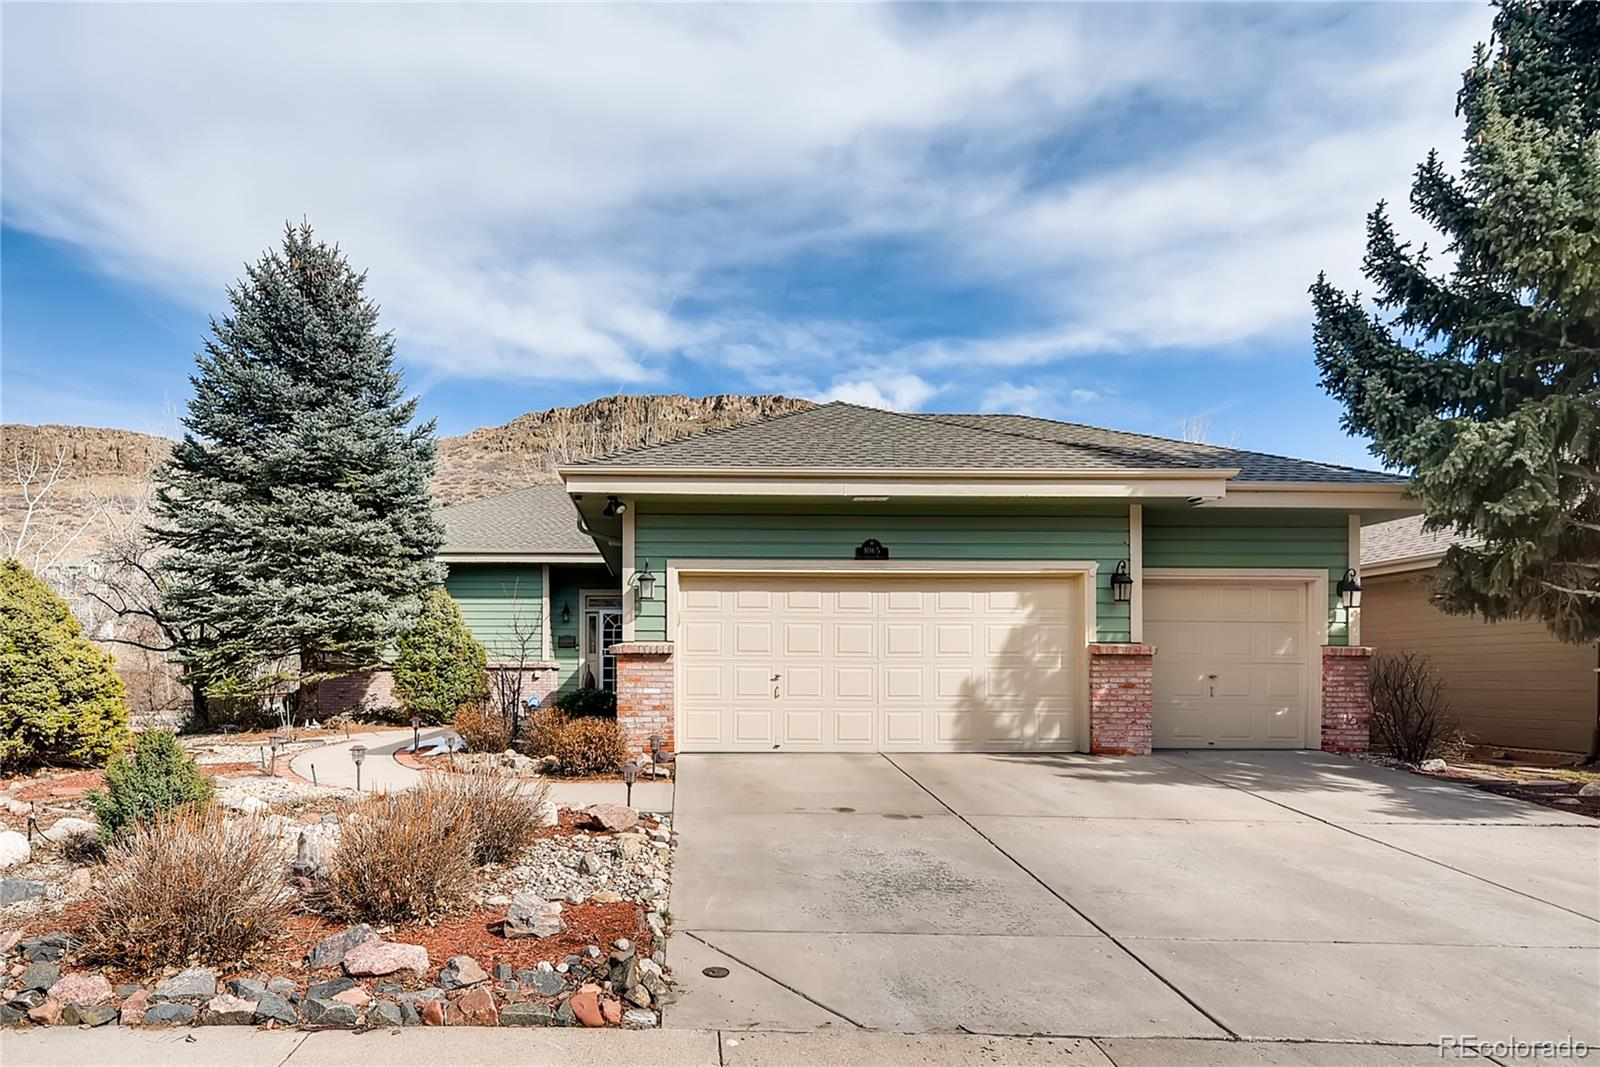 Sellers are motivated to sell, found another home . This amazing Home located in the heart of Golden. Walking and Bike Riding along the path in your backyard awaits you. This home has been updated from head to toe. You will love the xeriscape yard with lots of beautiful flowers that come out in the spring. There are fruit trees and beautiful greenery throughout the property. Small garden area for those of you who have a green thumb and want to grow your own. The Kitchen is a Chef dream. Viking appliances with top of the line newly installed cabinetry and custom lighting throughout and the beautiful granite on the custom island and back splash is over the top. Double sided fireplace is in the kitchen and living room. The master is secluded and the stand alone tub will transport you to a paradise. Custom Shower with high end fixtures and tile. Walk in Closet. This home is great for entertaining with an open floor plan and inviting deck with mountain views. Home theater (including screen and furniture are included) and exercise room will enhance you lifestyle, all equipment included.